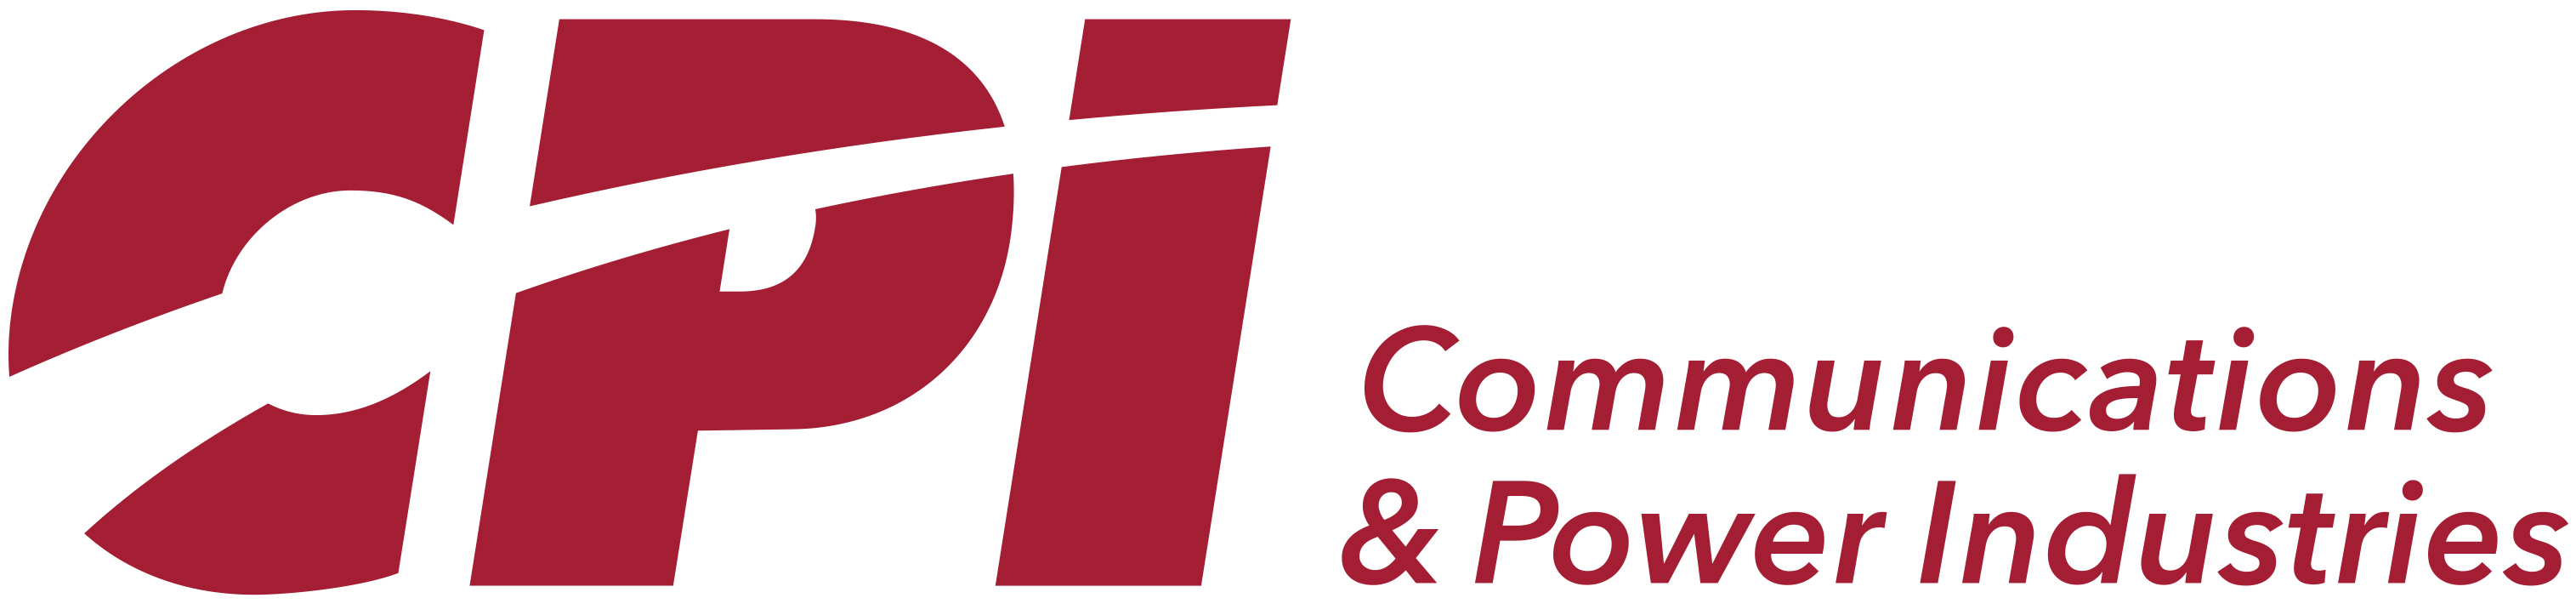 CPI - Communications & Power Industries